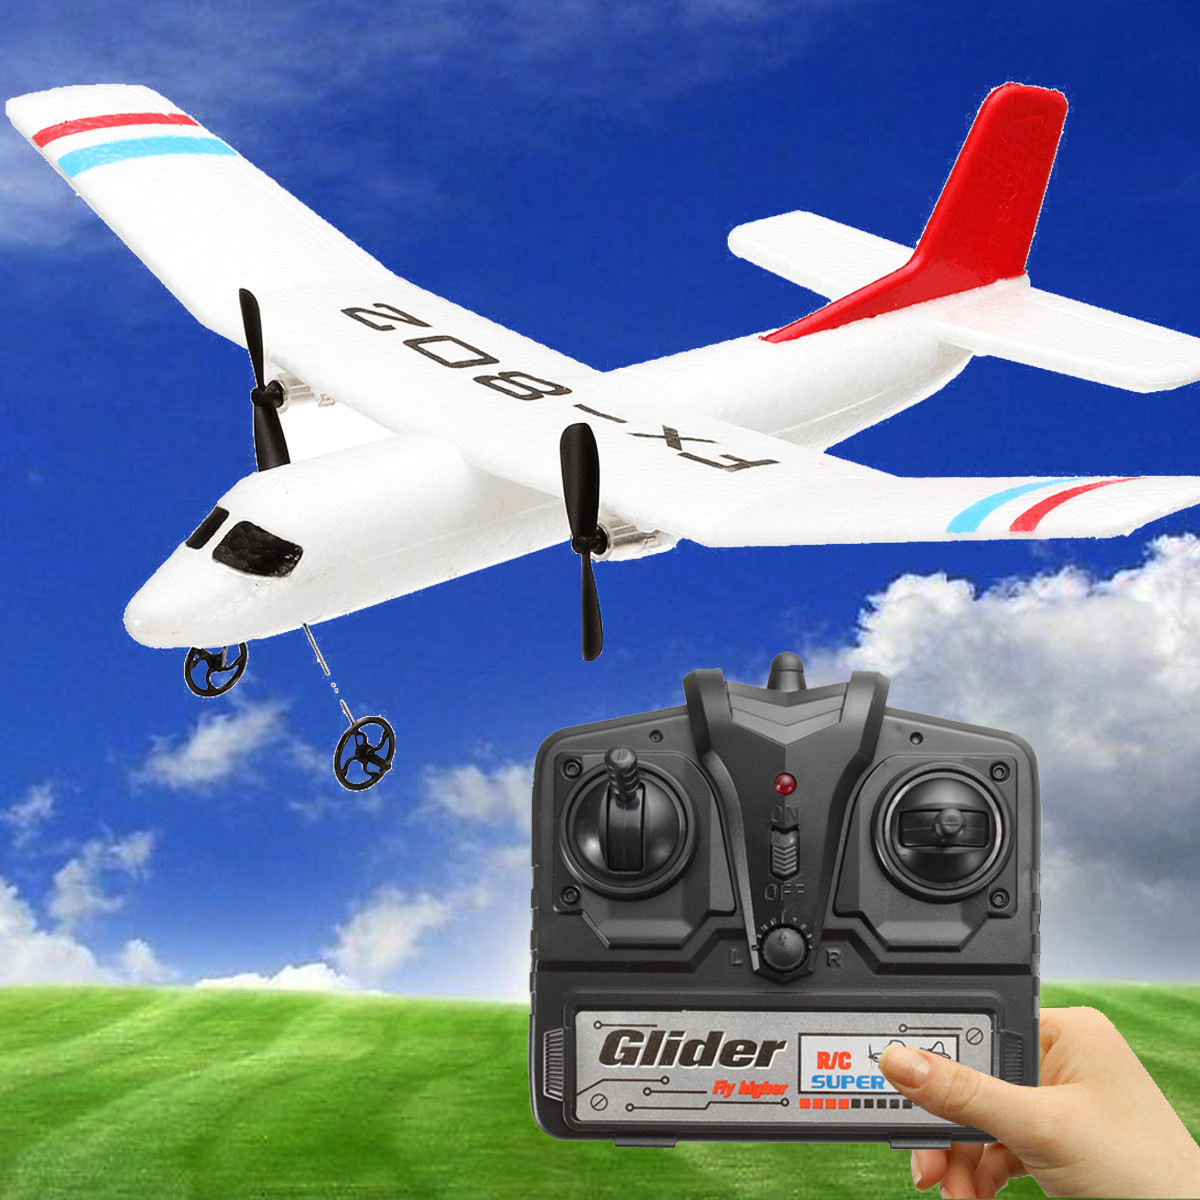 Remote Control Airplane RC Model Airplane Model Sircraft Beginners RTF Flybear 802, Today Special Offer, Gift by